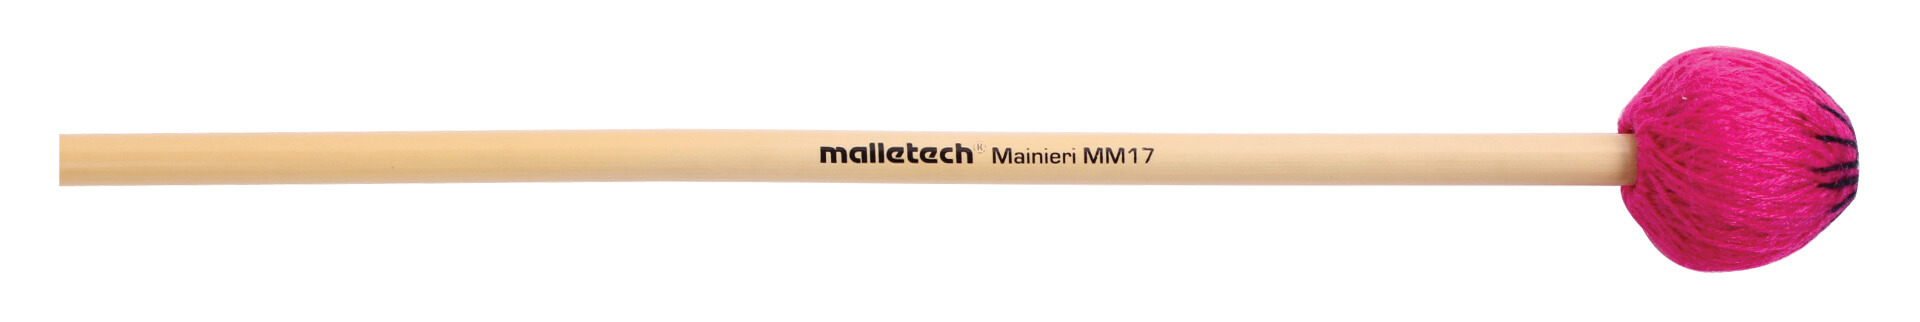 Malletech MM17 Mike Mainieri, set of 4